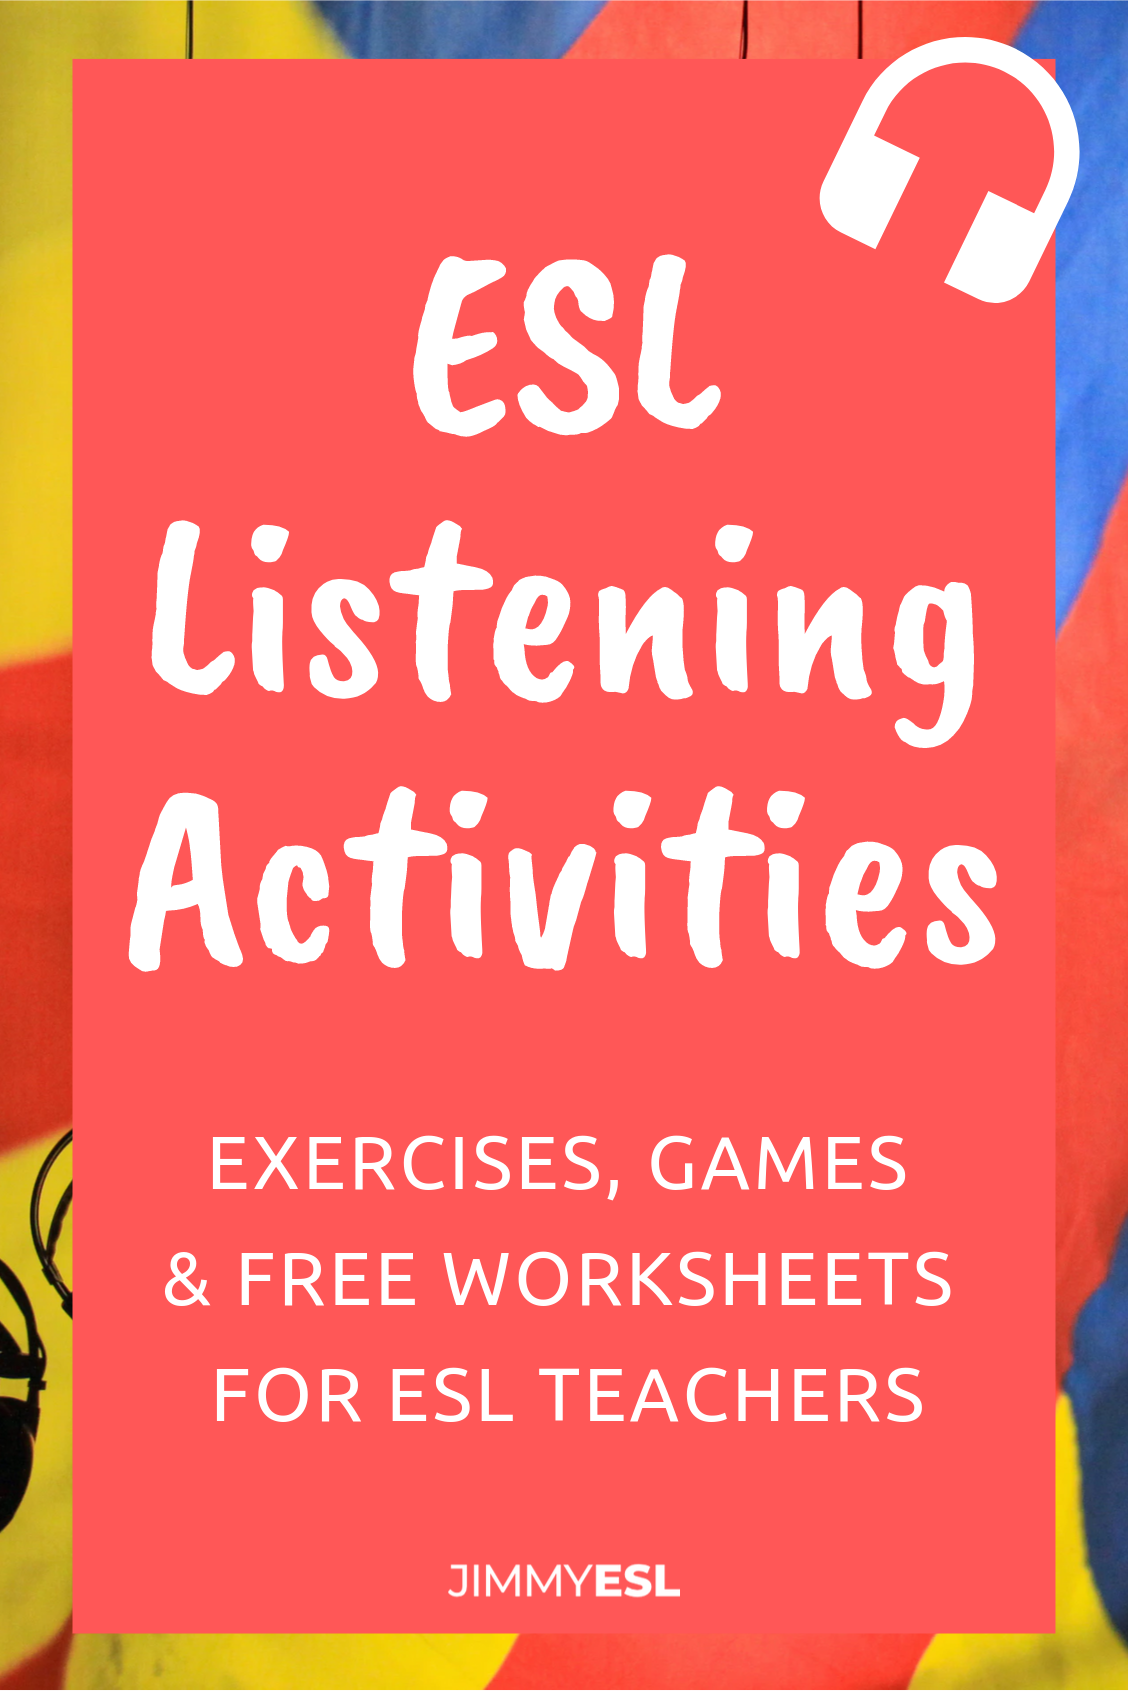 12 Great Esl Listening Activities Amp Games Plus Free